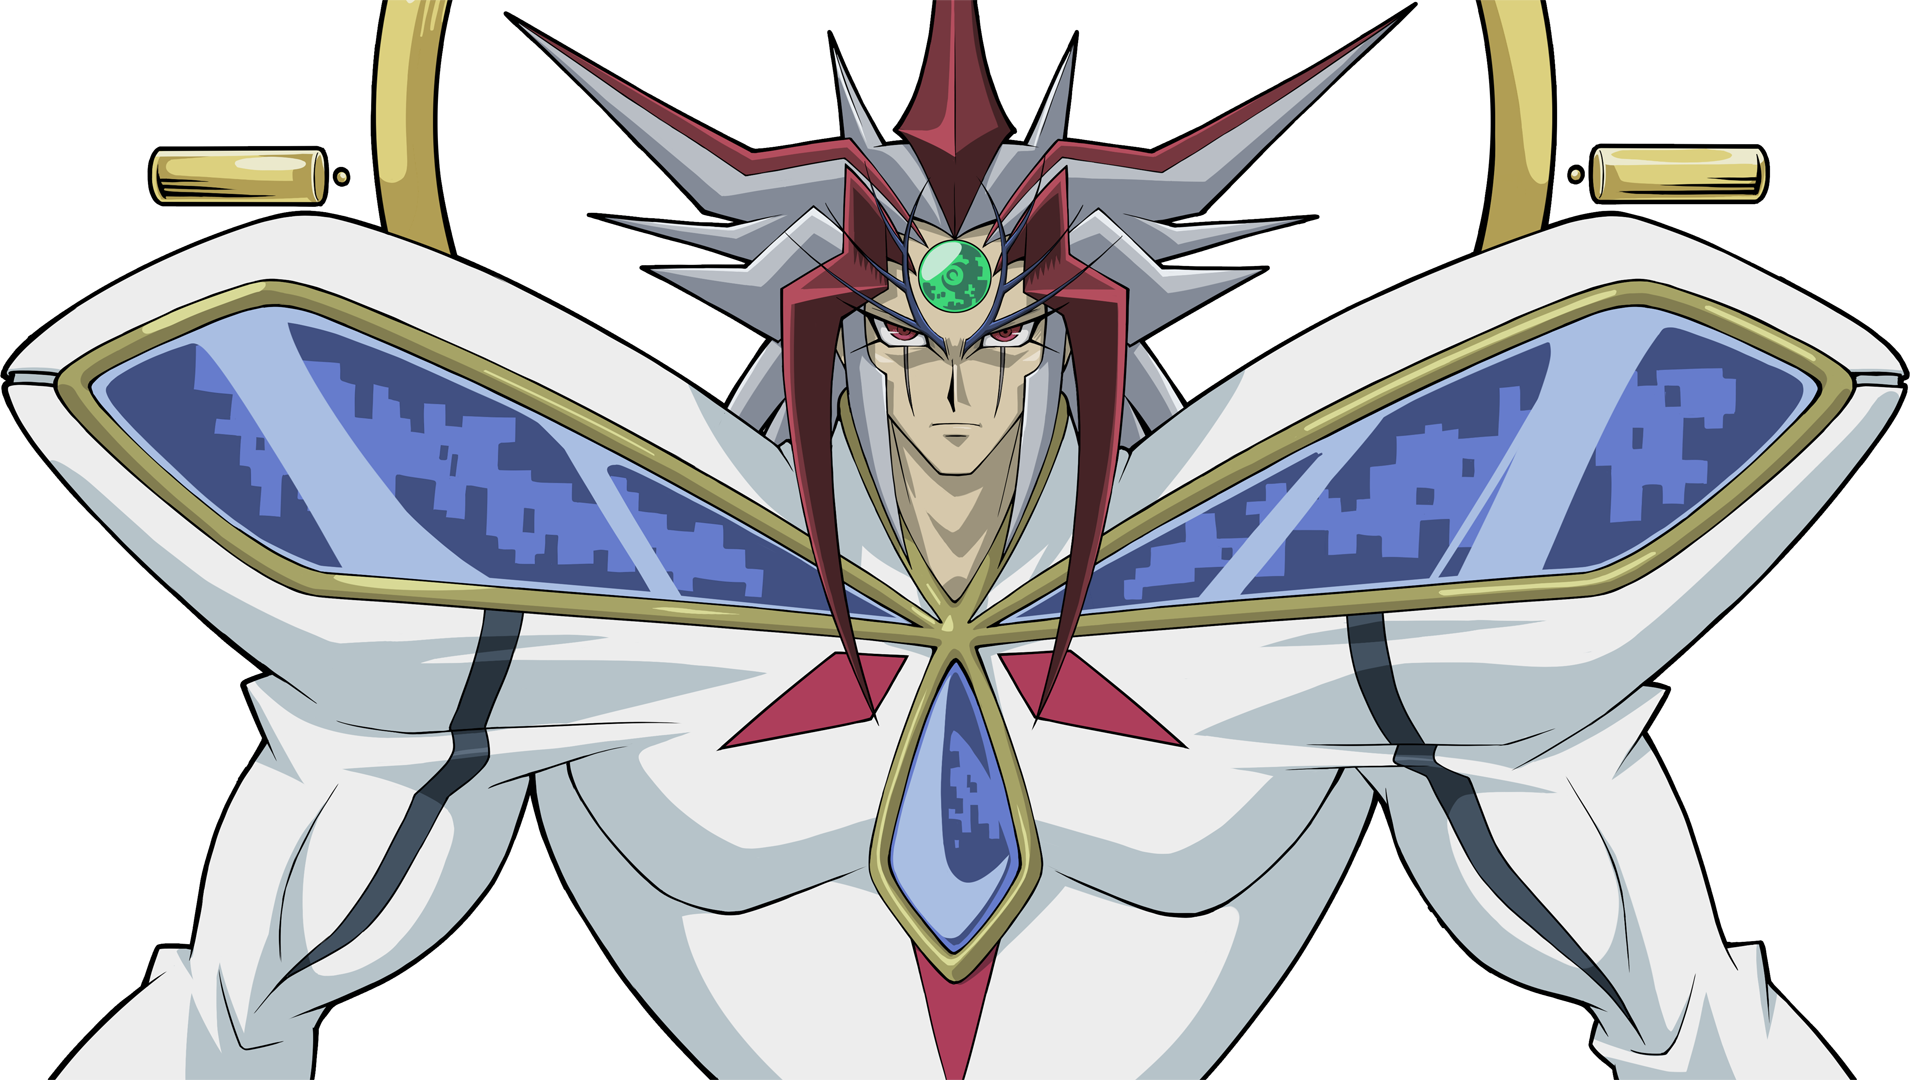 Aporia (Legacy of the Duelist)